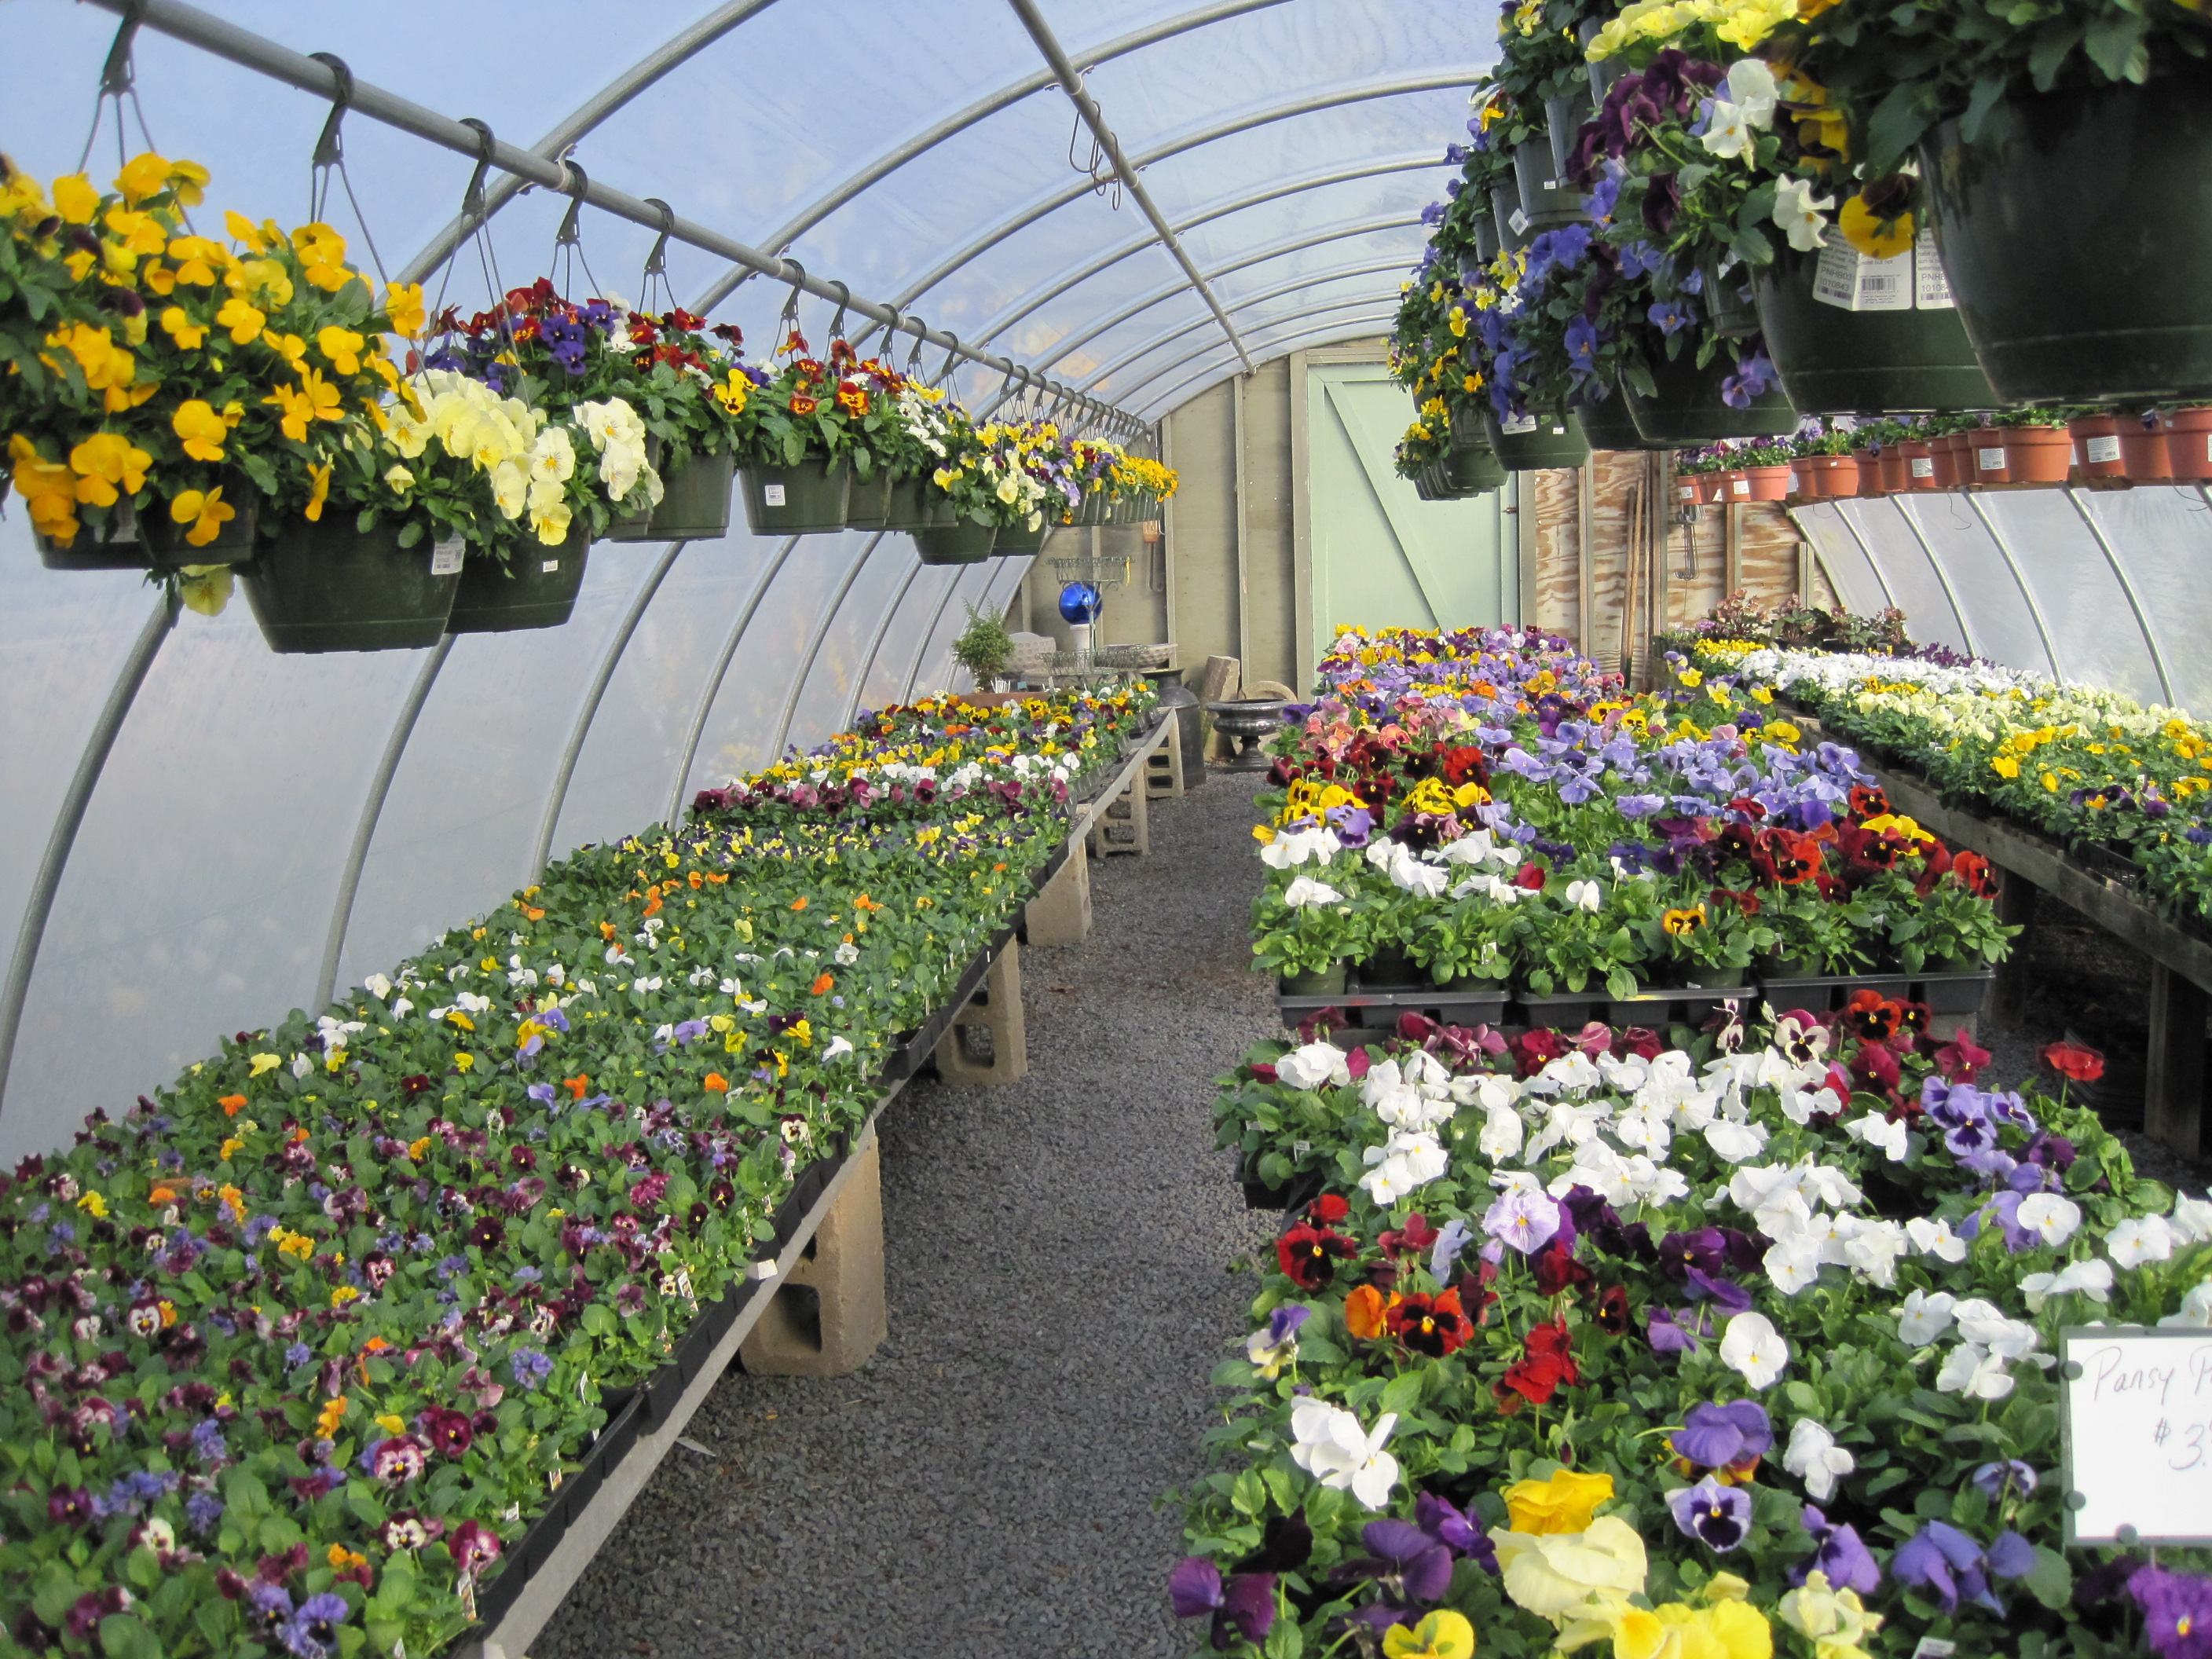 garden photo used peppers greenhouse such hobby for gardening private royalty stock growing small as image